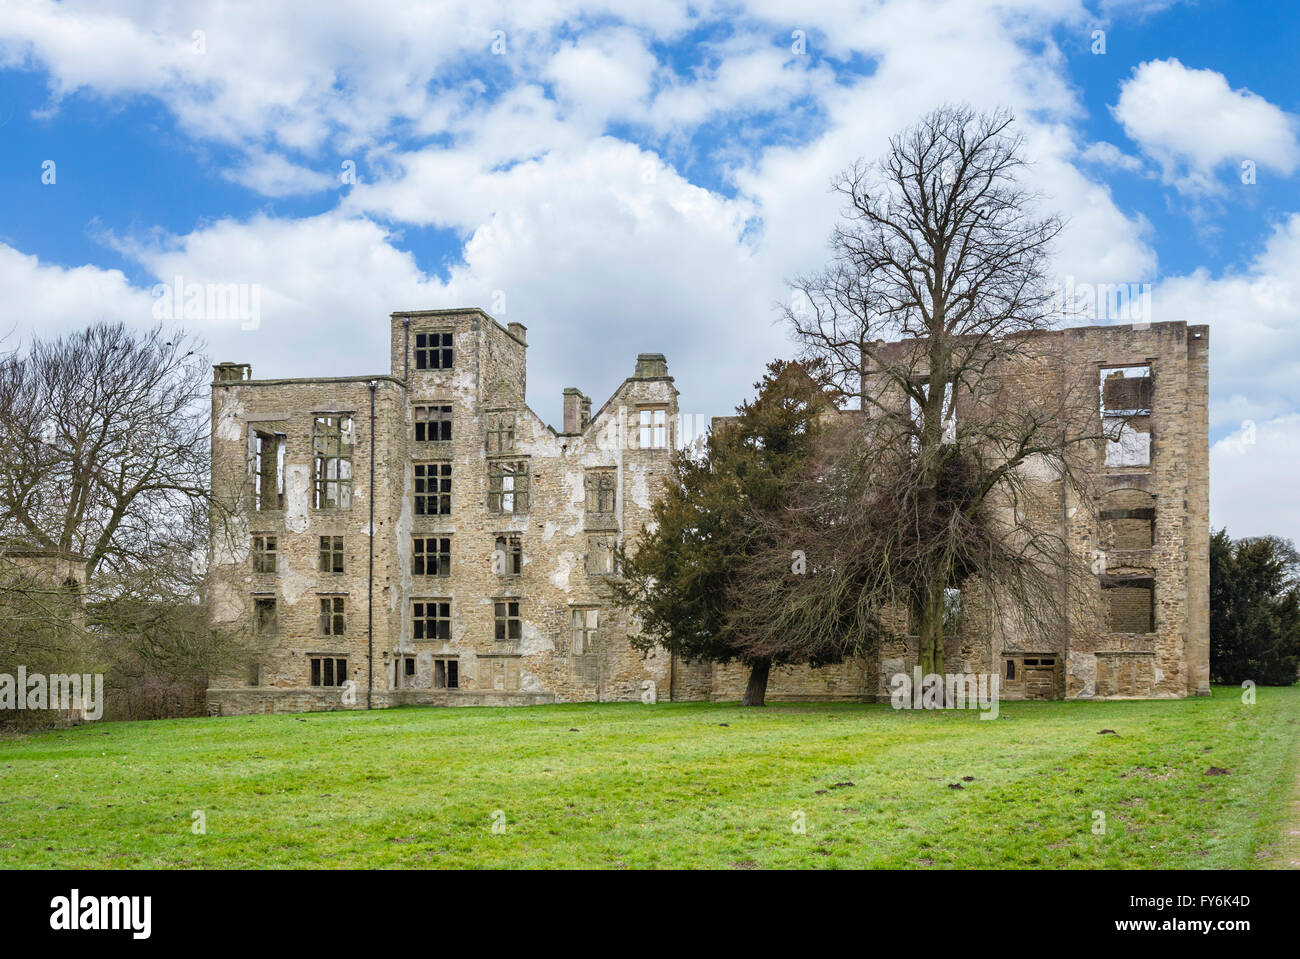 Hardwick Old Hall, the ruins of an Elizabethan country house near Chesterfield, Derbyshire, England, UK - Stock Image